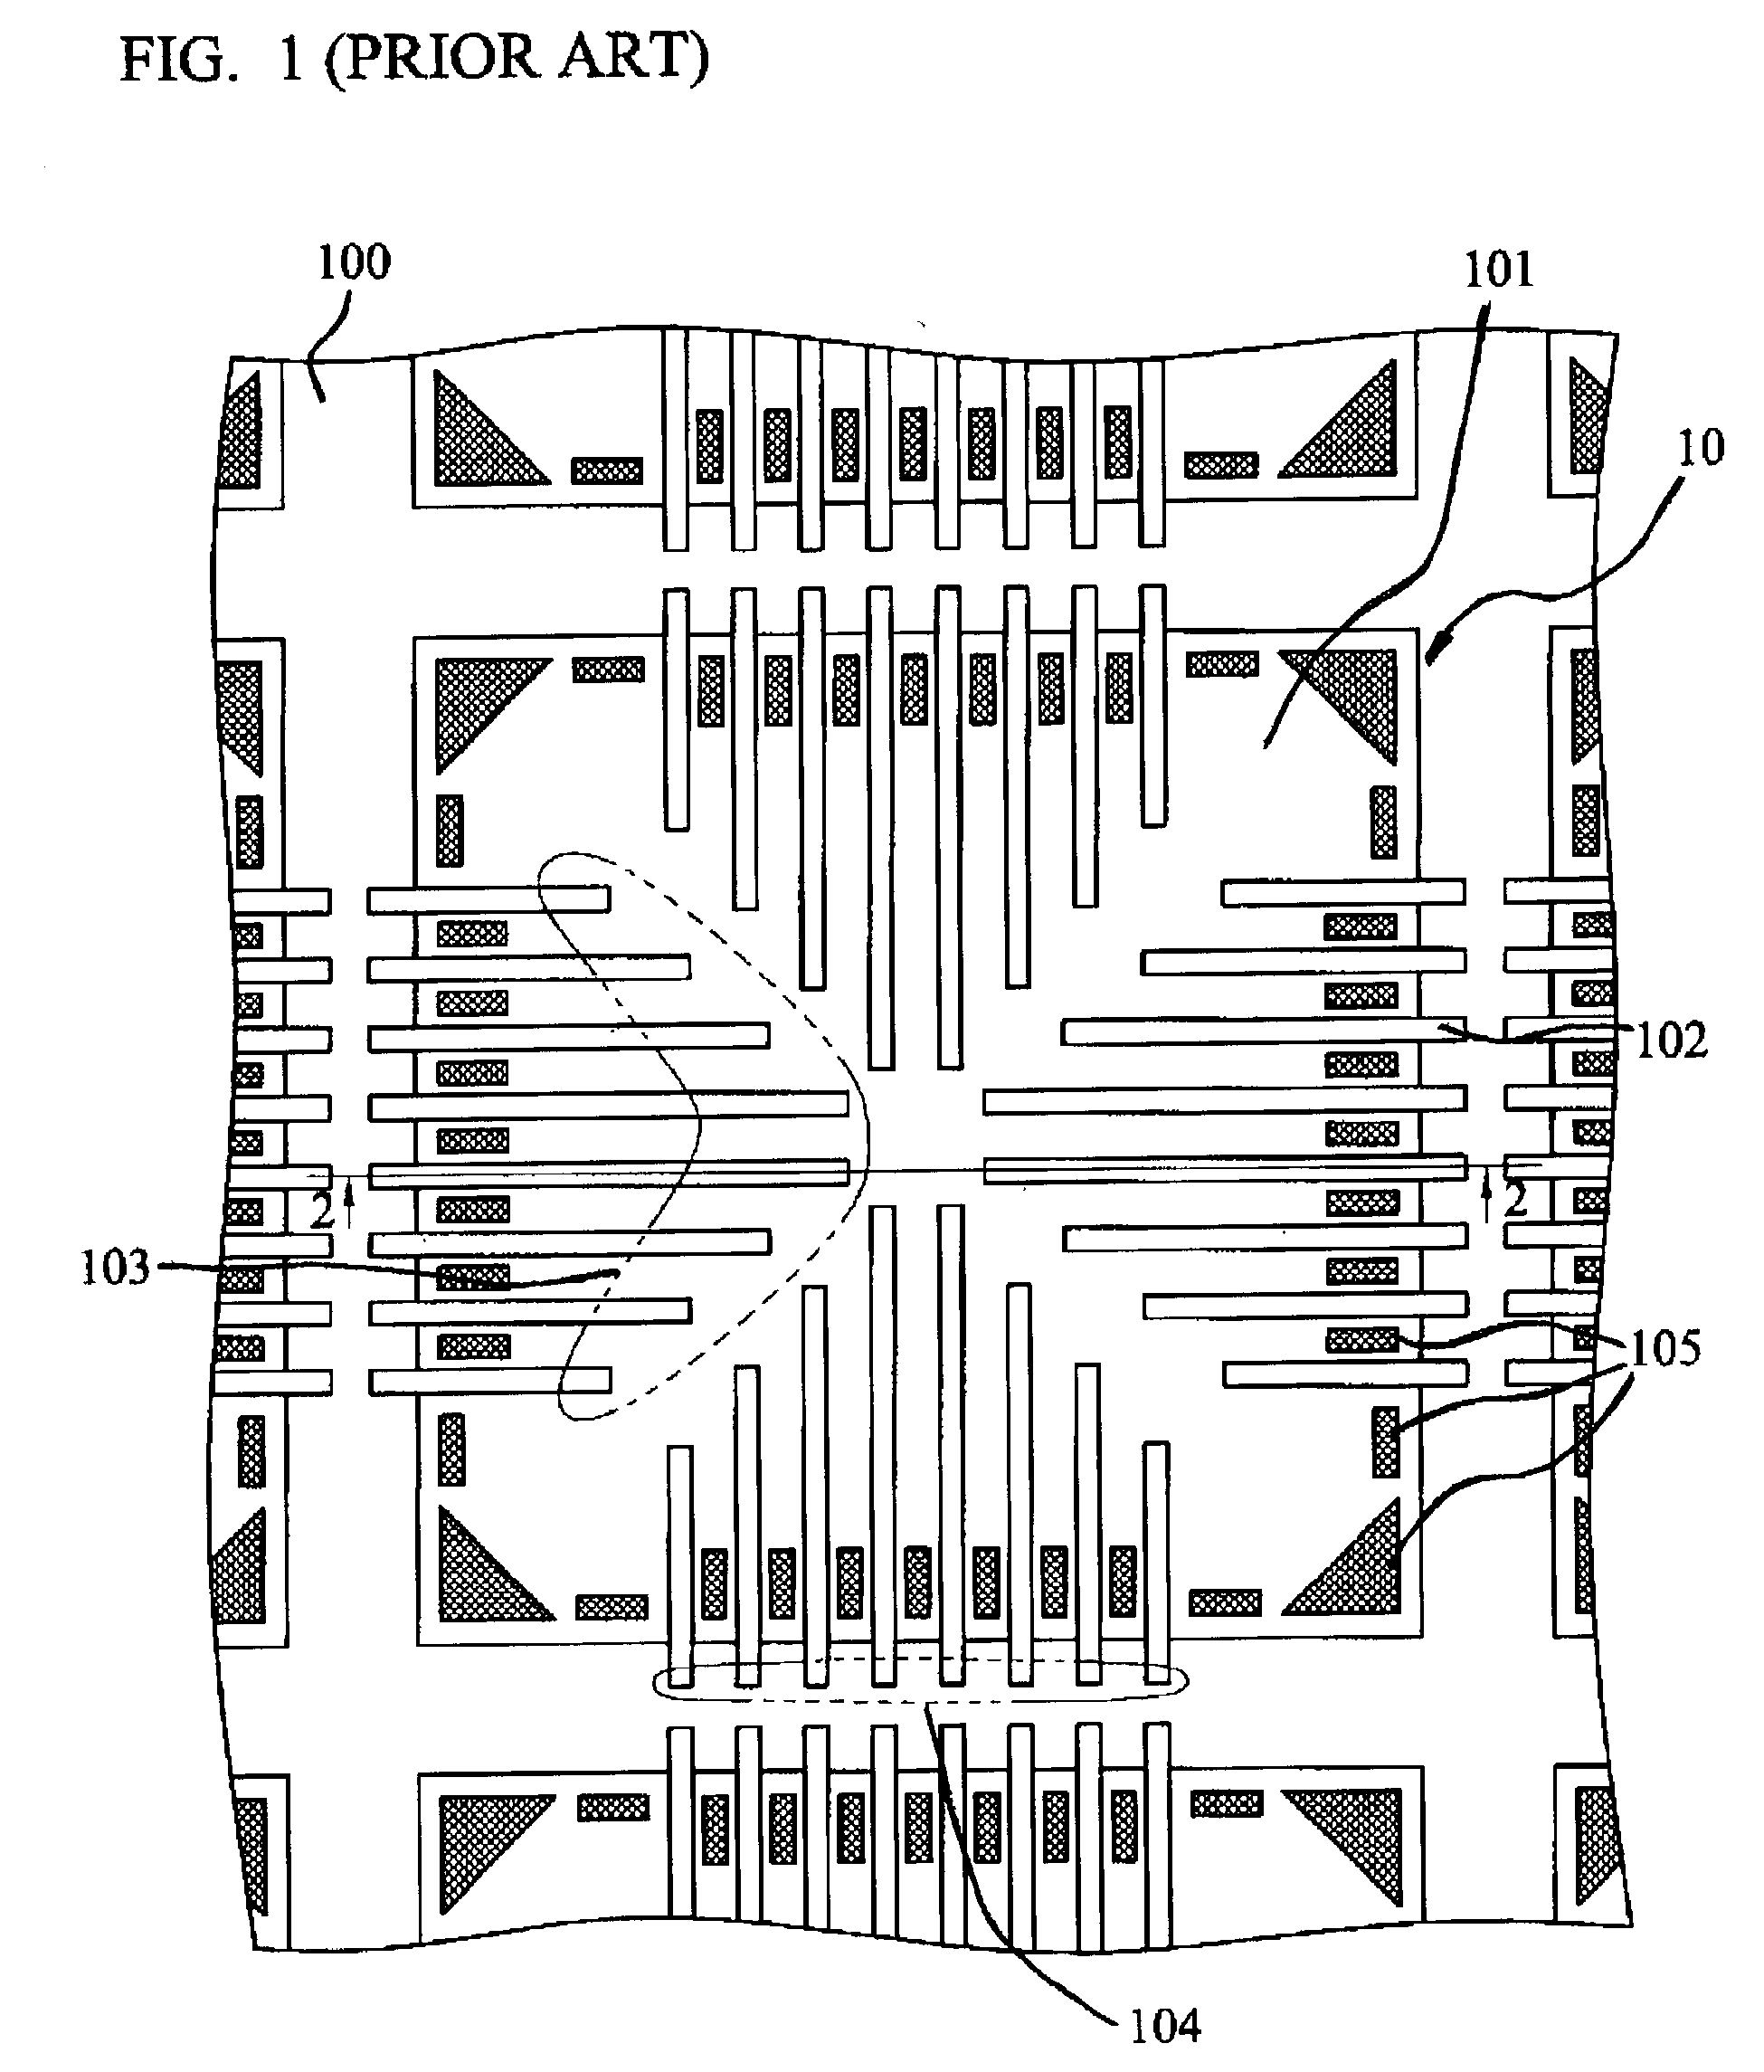 Brevet Us20040040592 Heat Sink For Silicon Thermopile Google Brevets Wiring Diagrams Patent Drawing